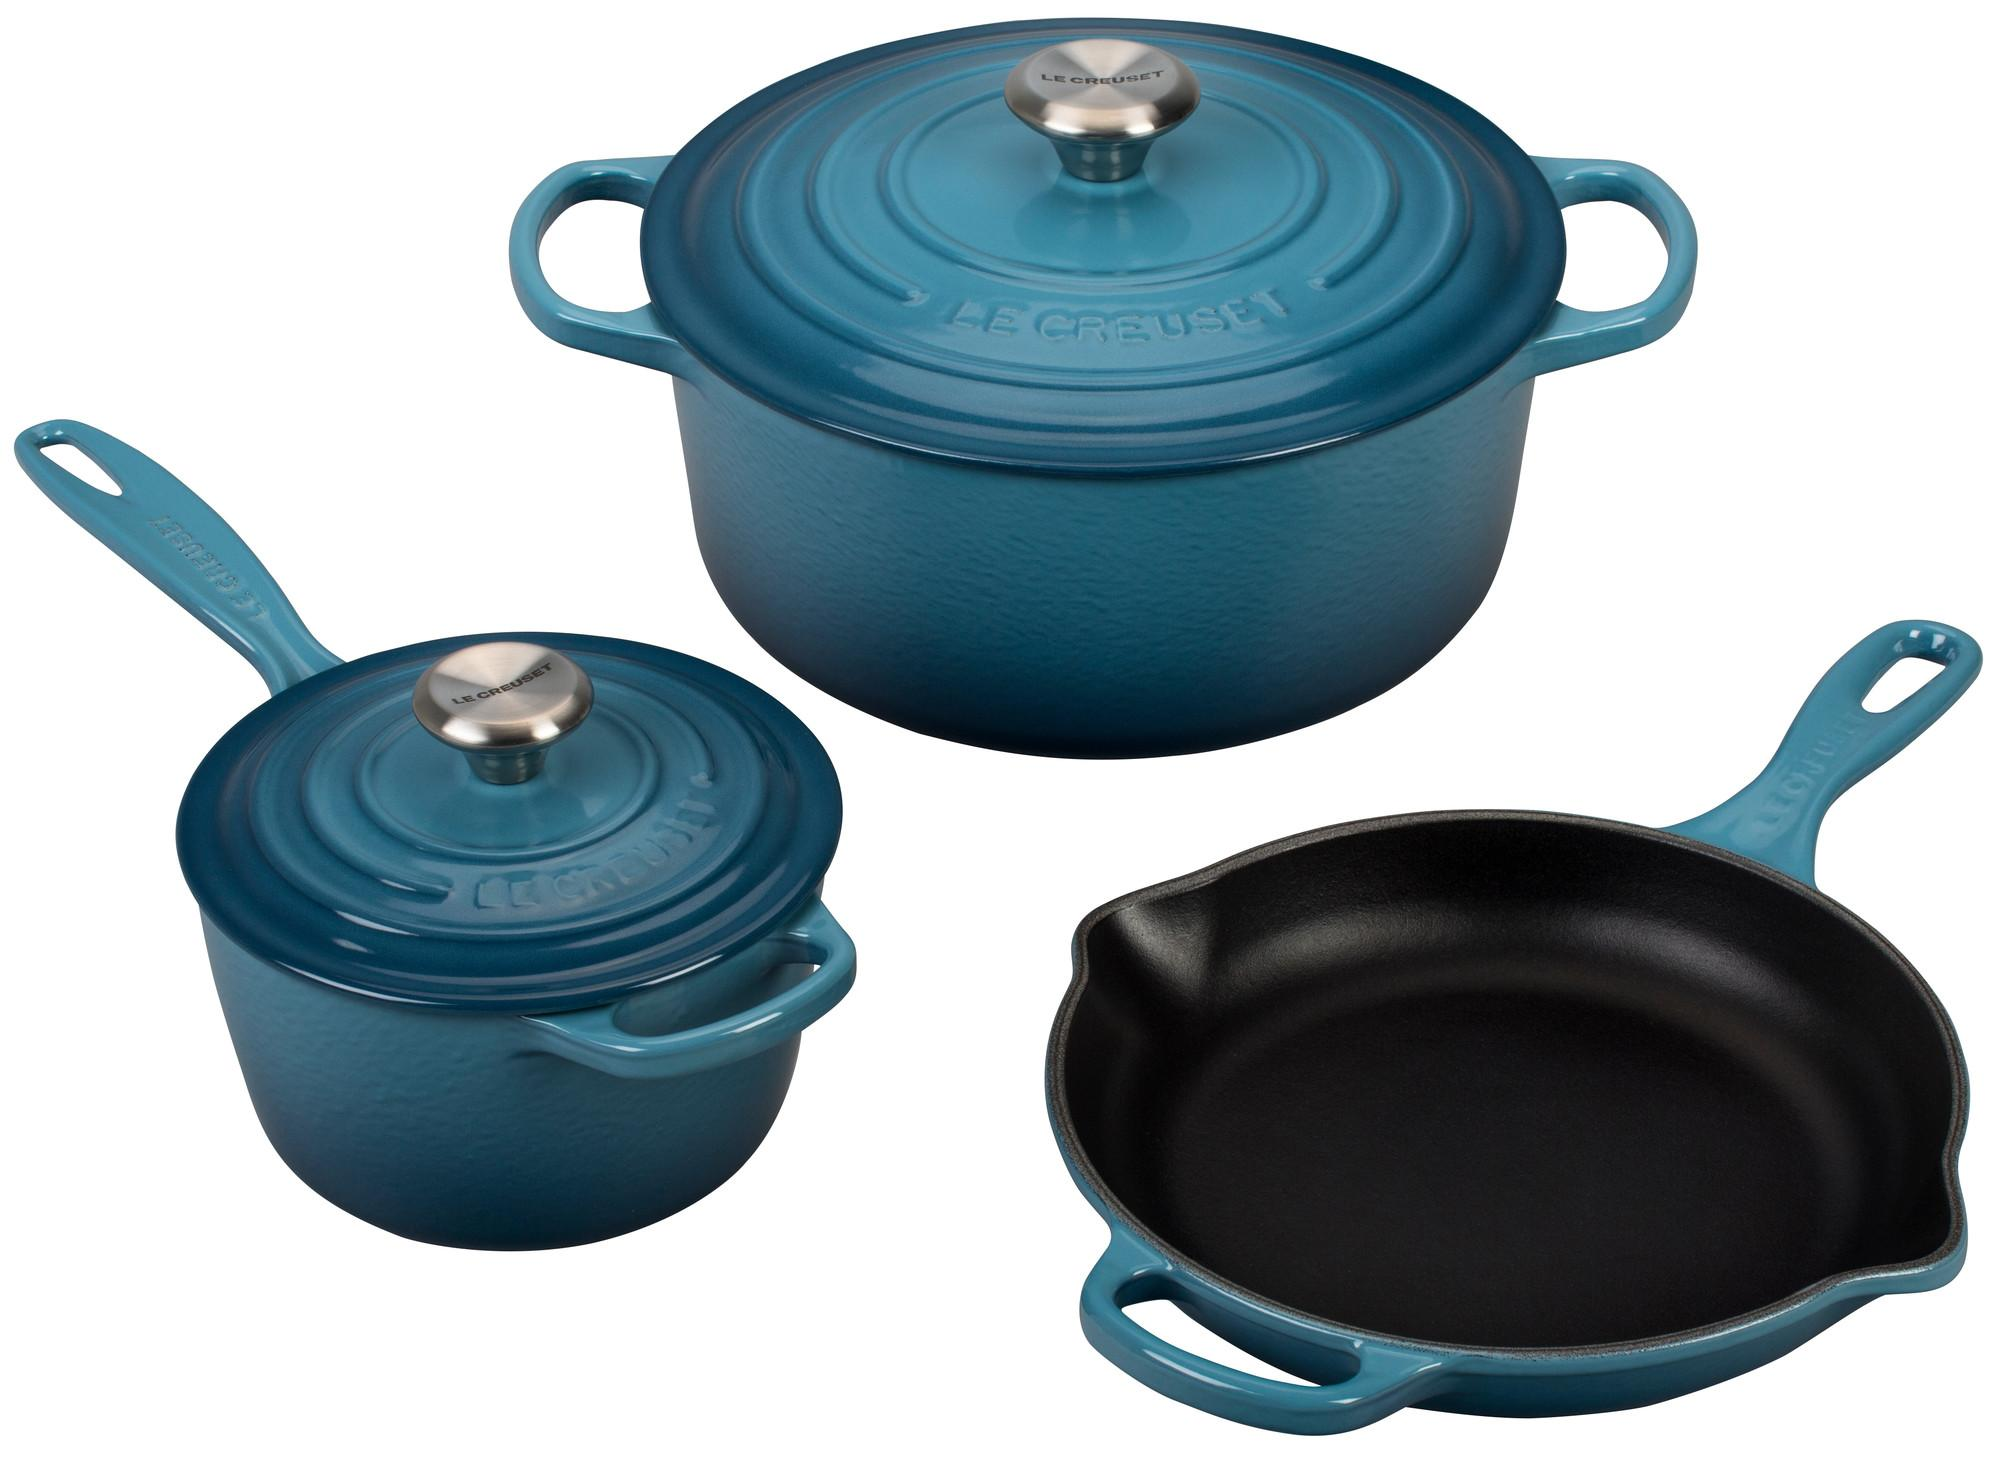 le creuset 5 piece signature enameled cast iron cookware. Black Bedroom Furniture Sets. Home Design Ideas